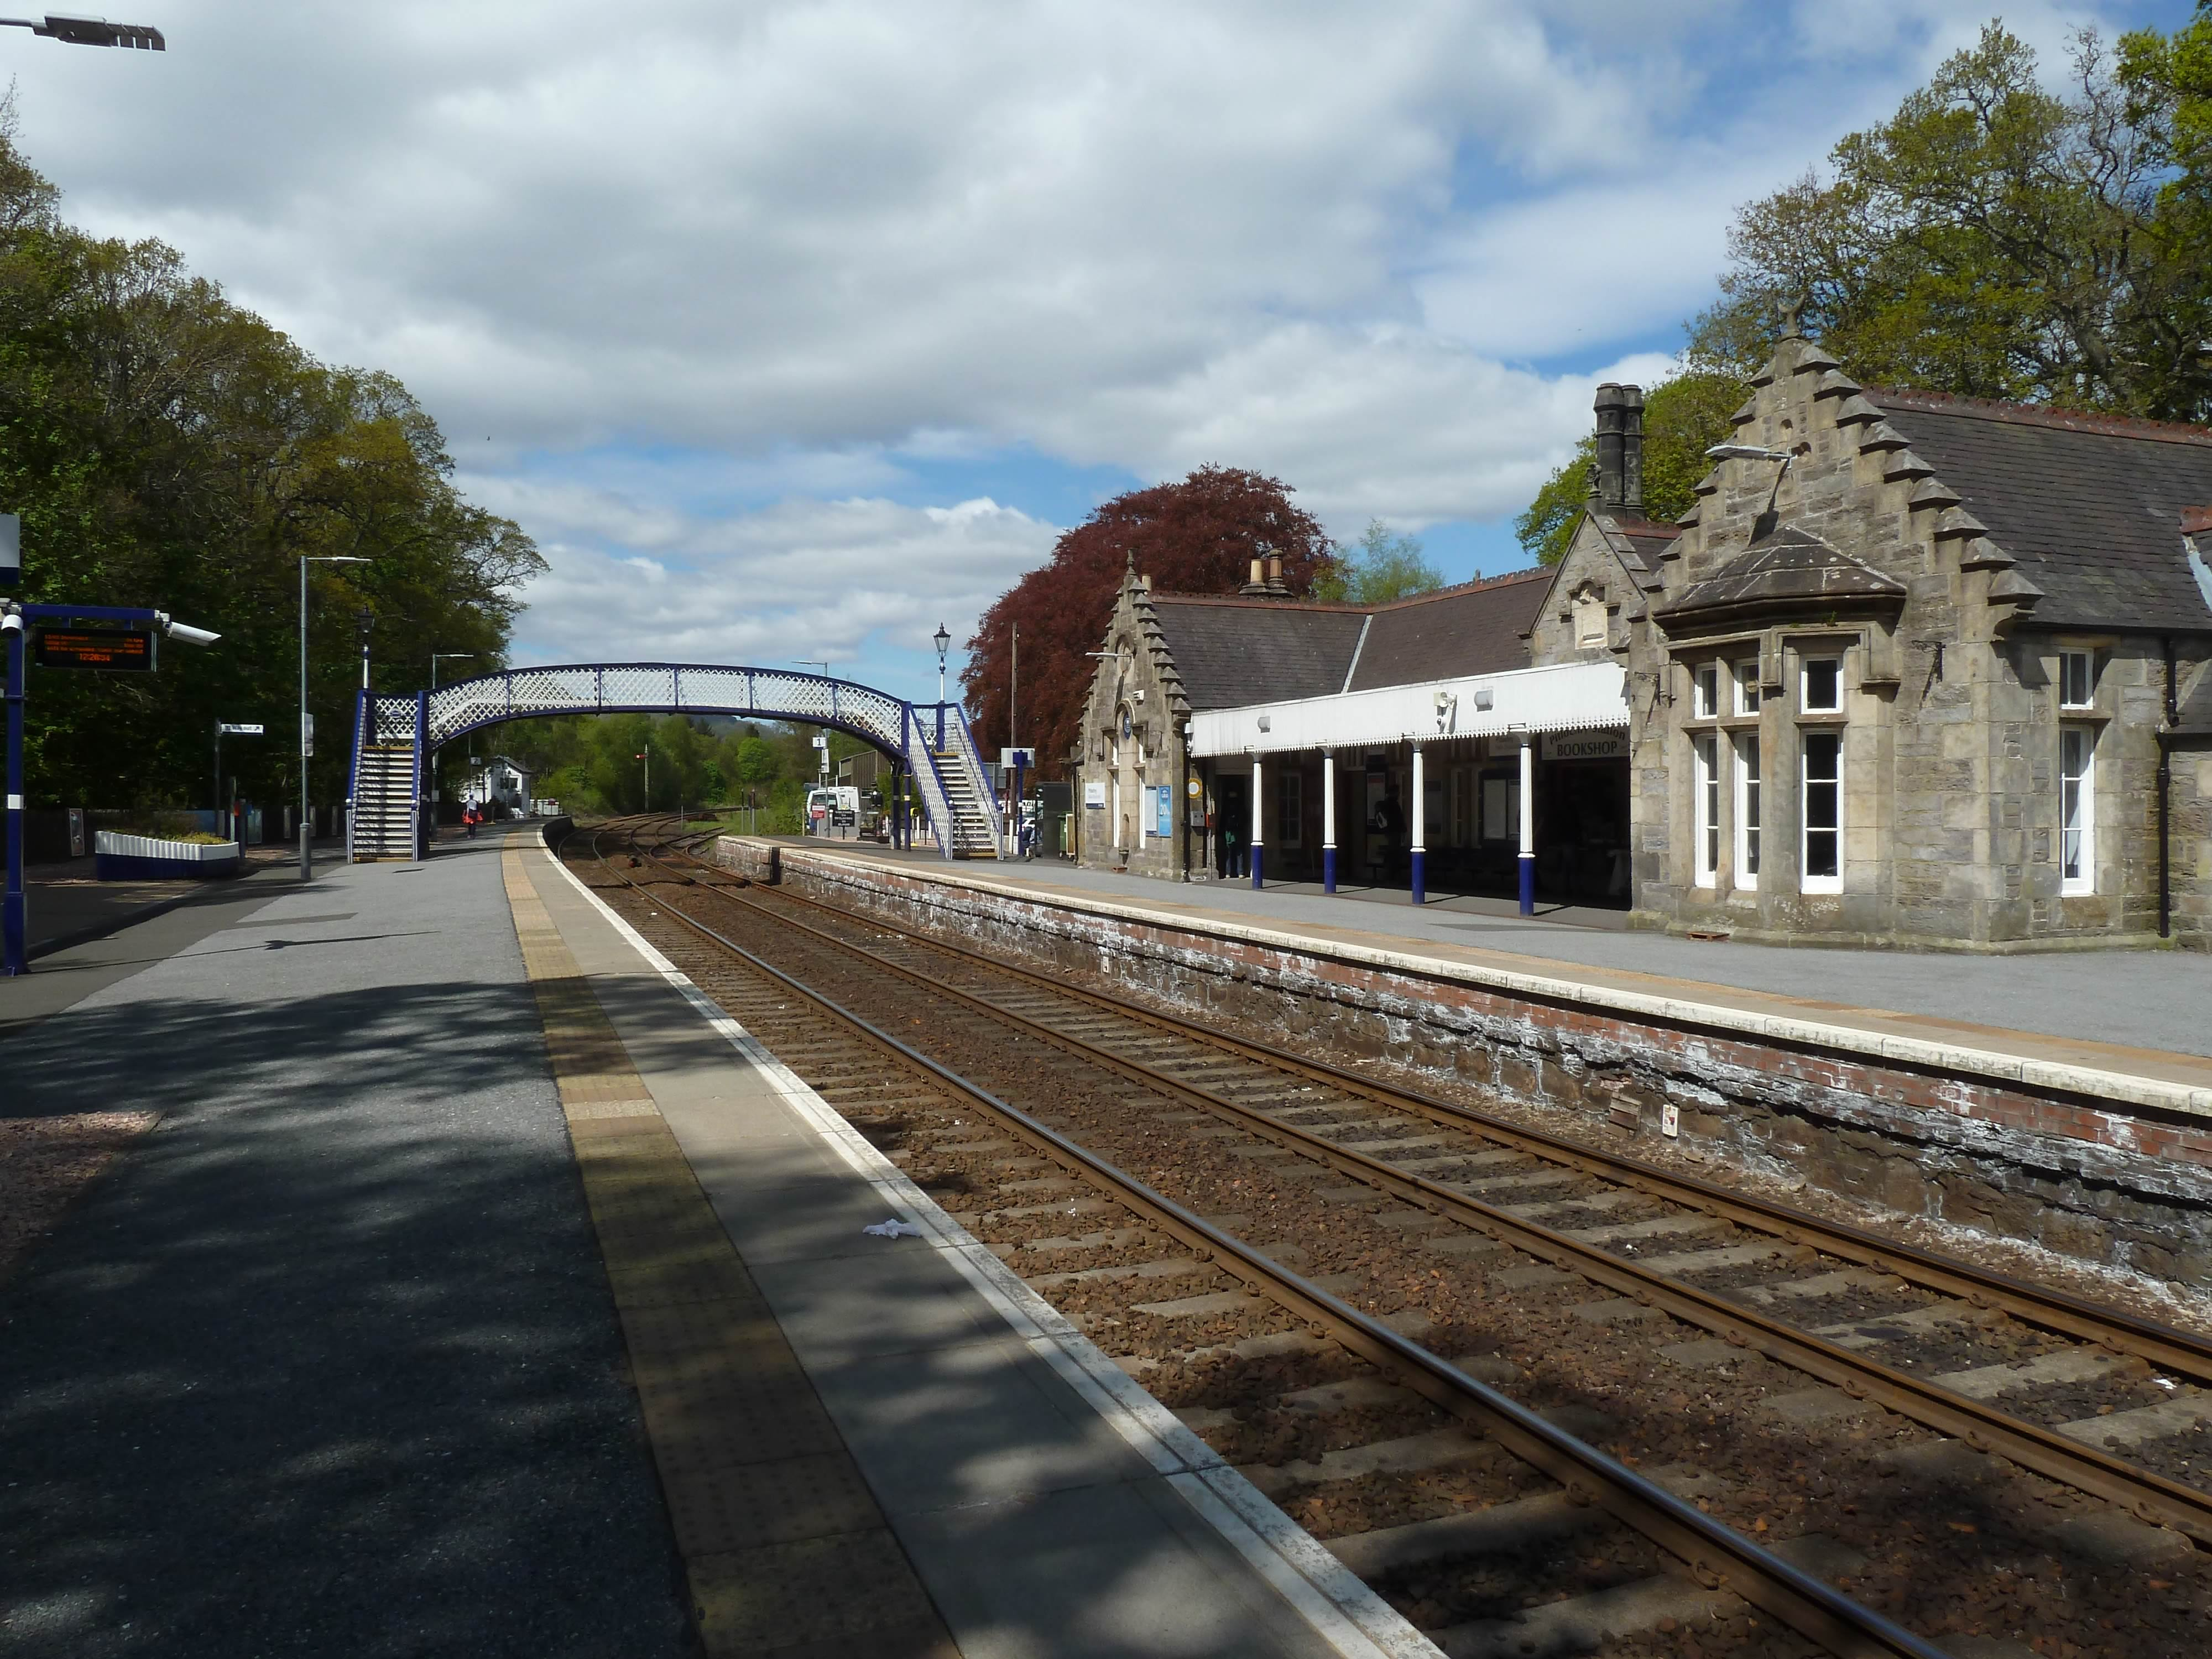 12.25 – Pitlochry station